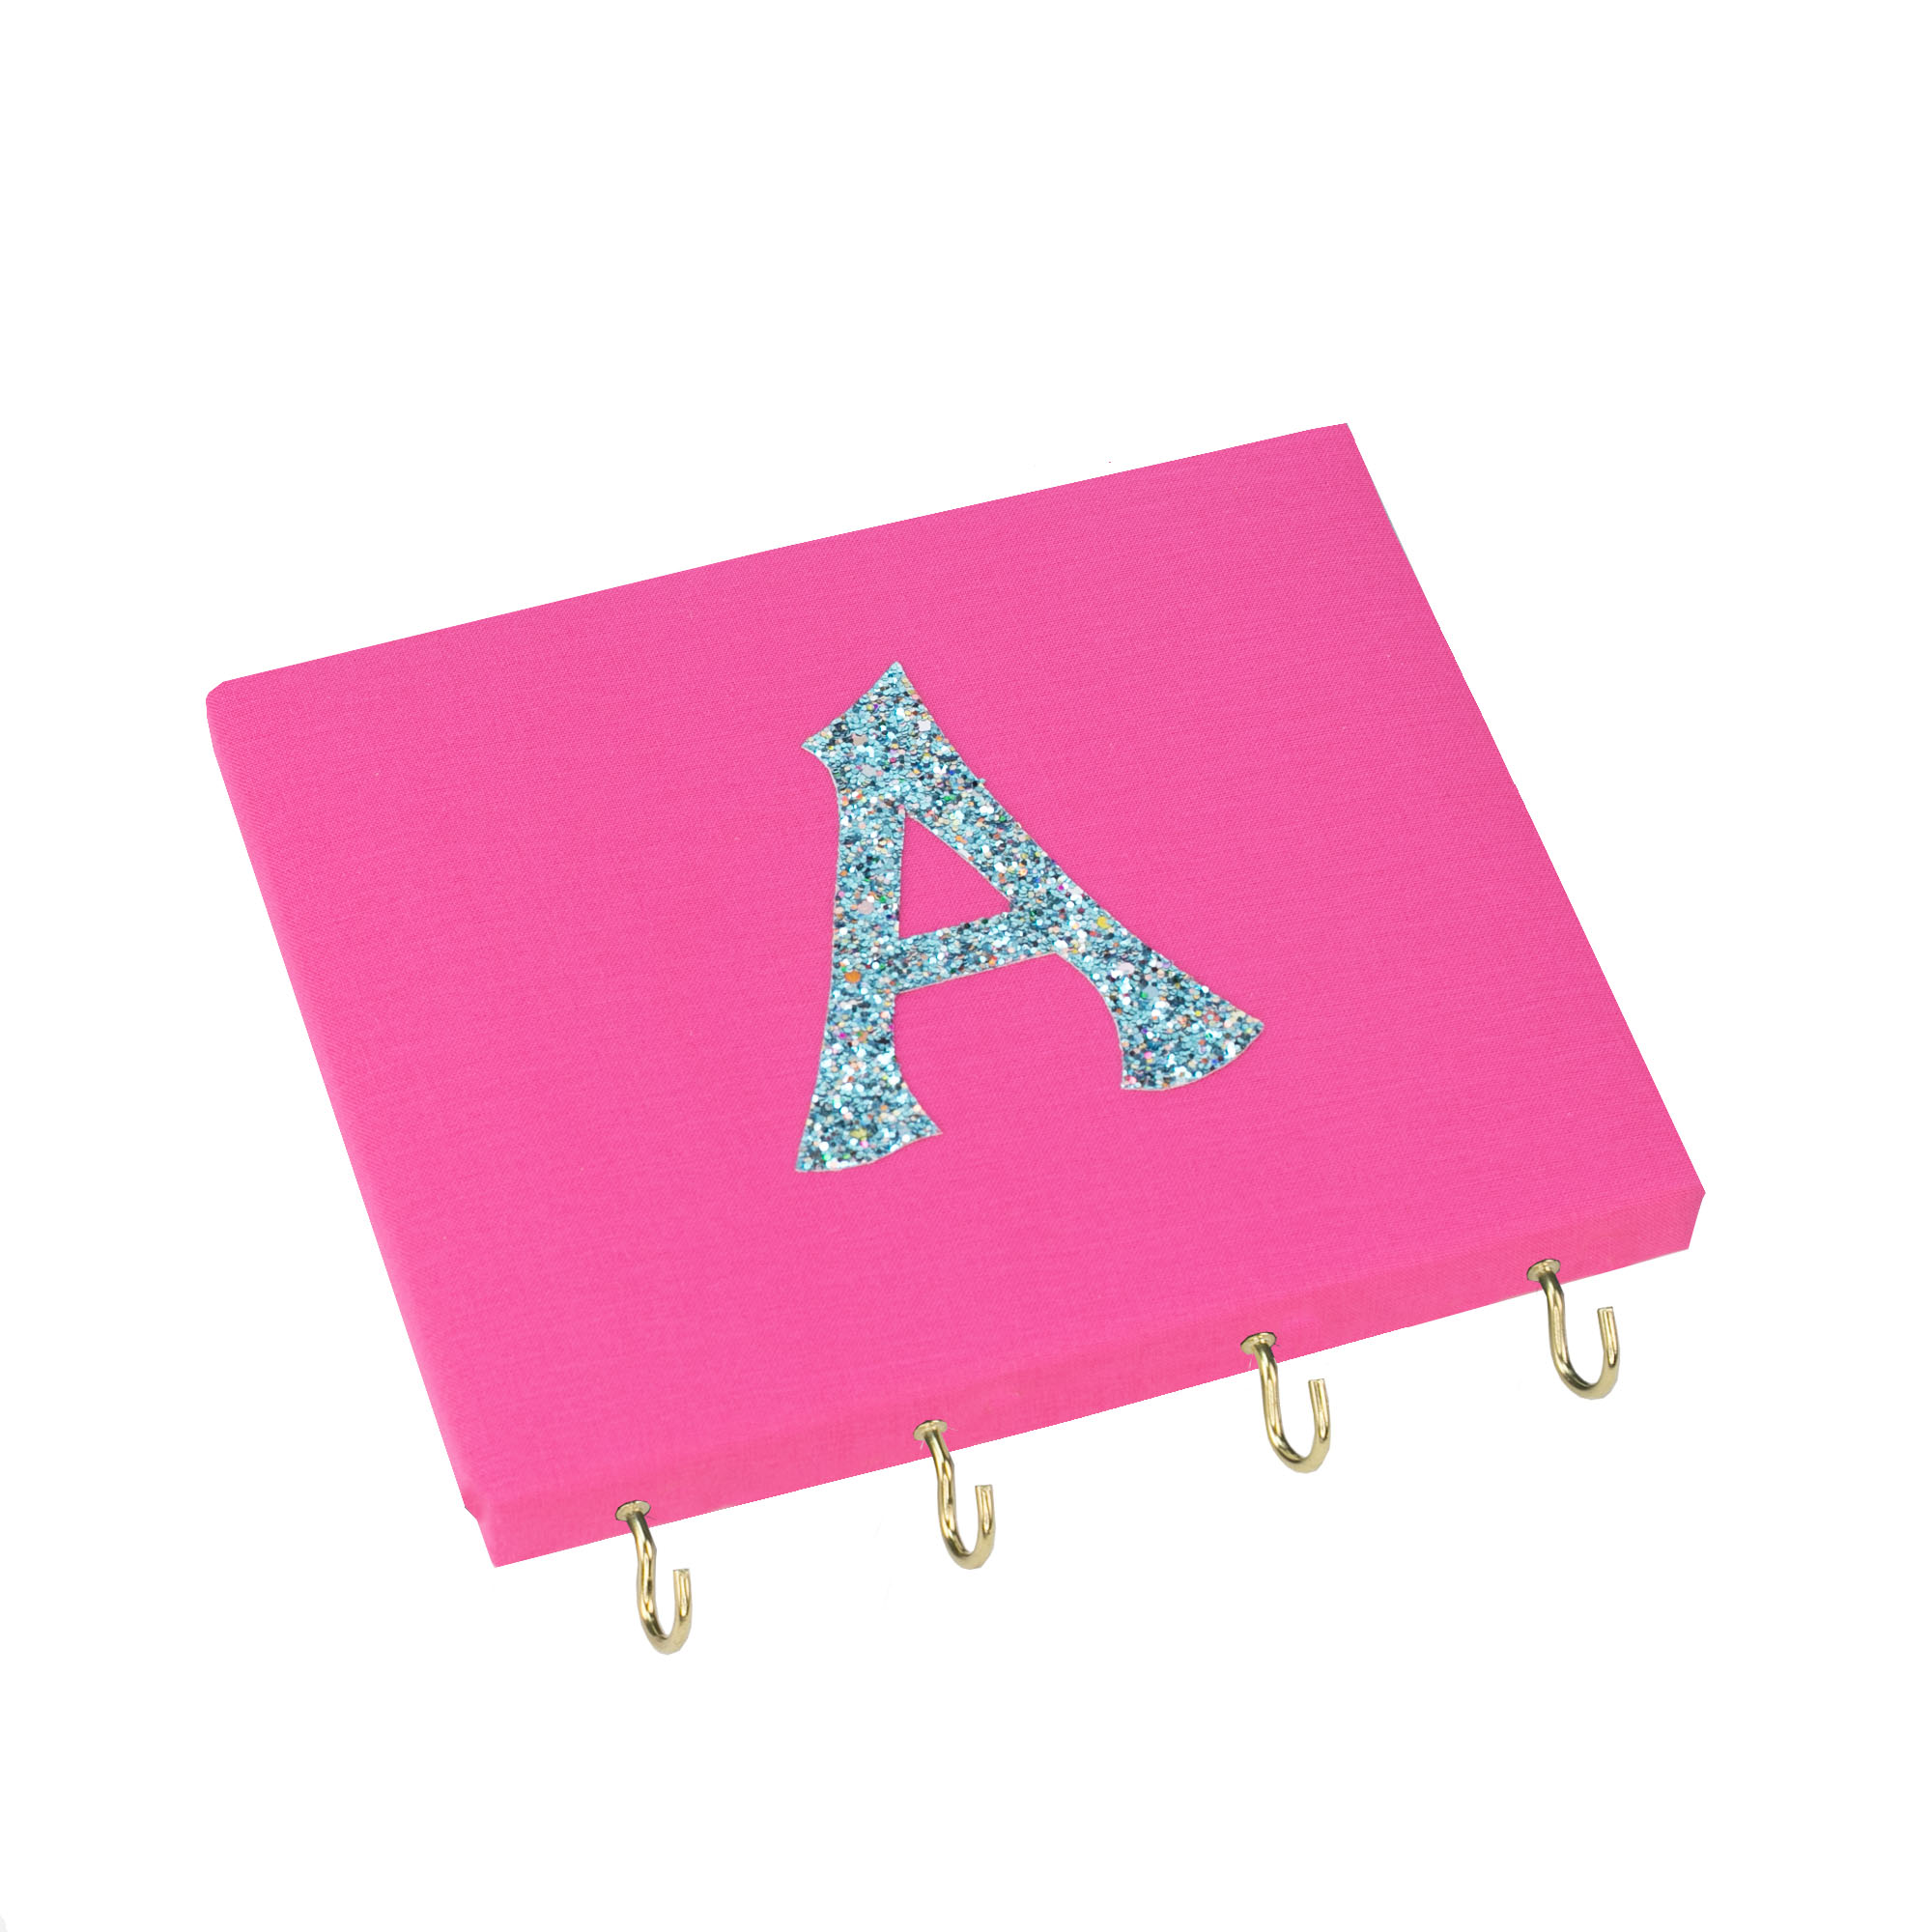 Personalised Initial Board – Pink / Turquoise Initial